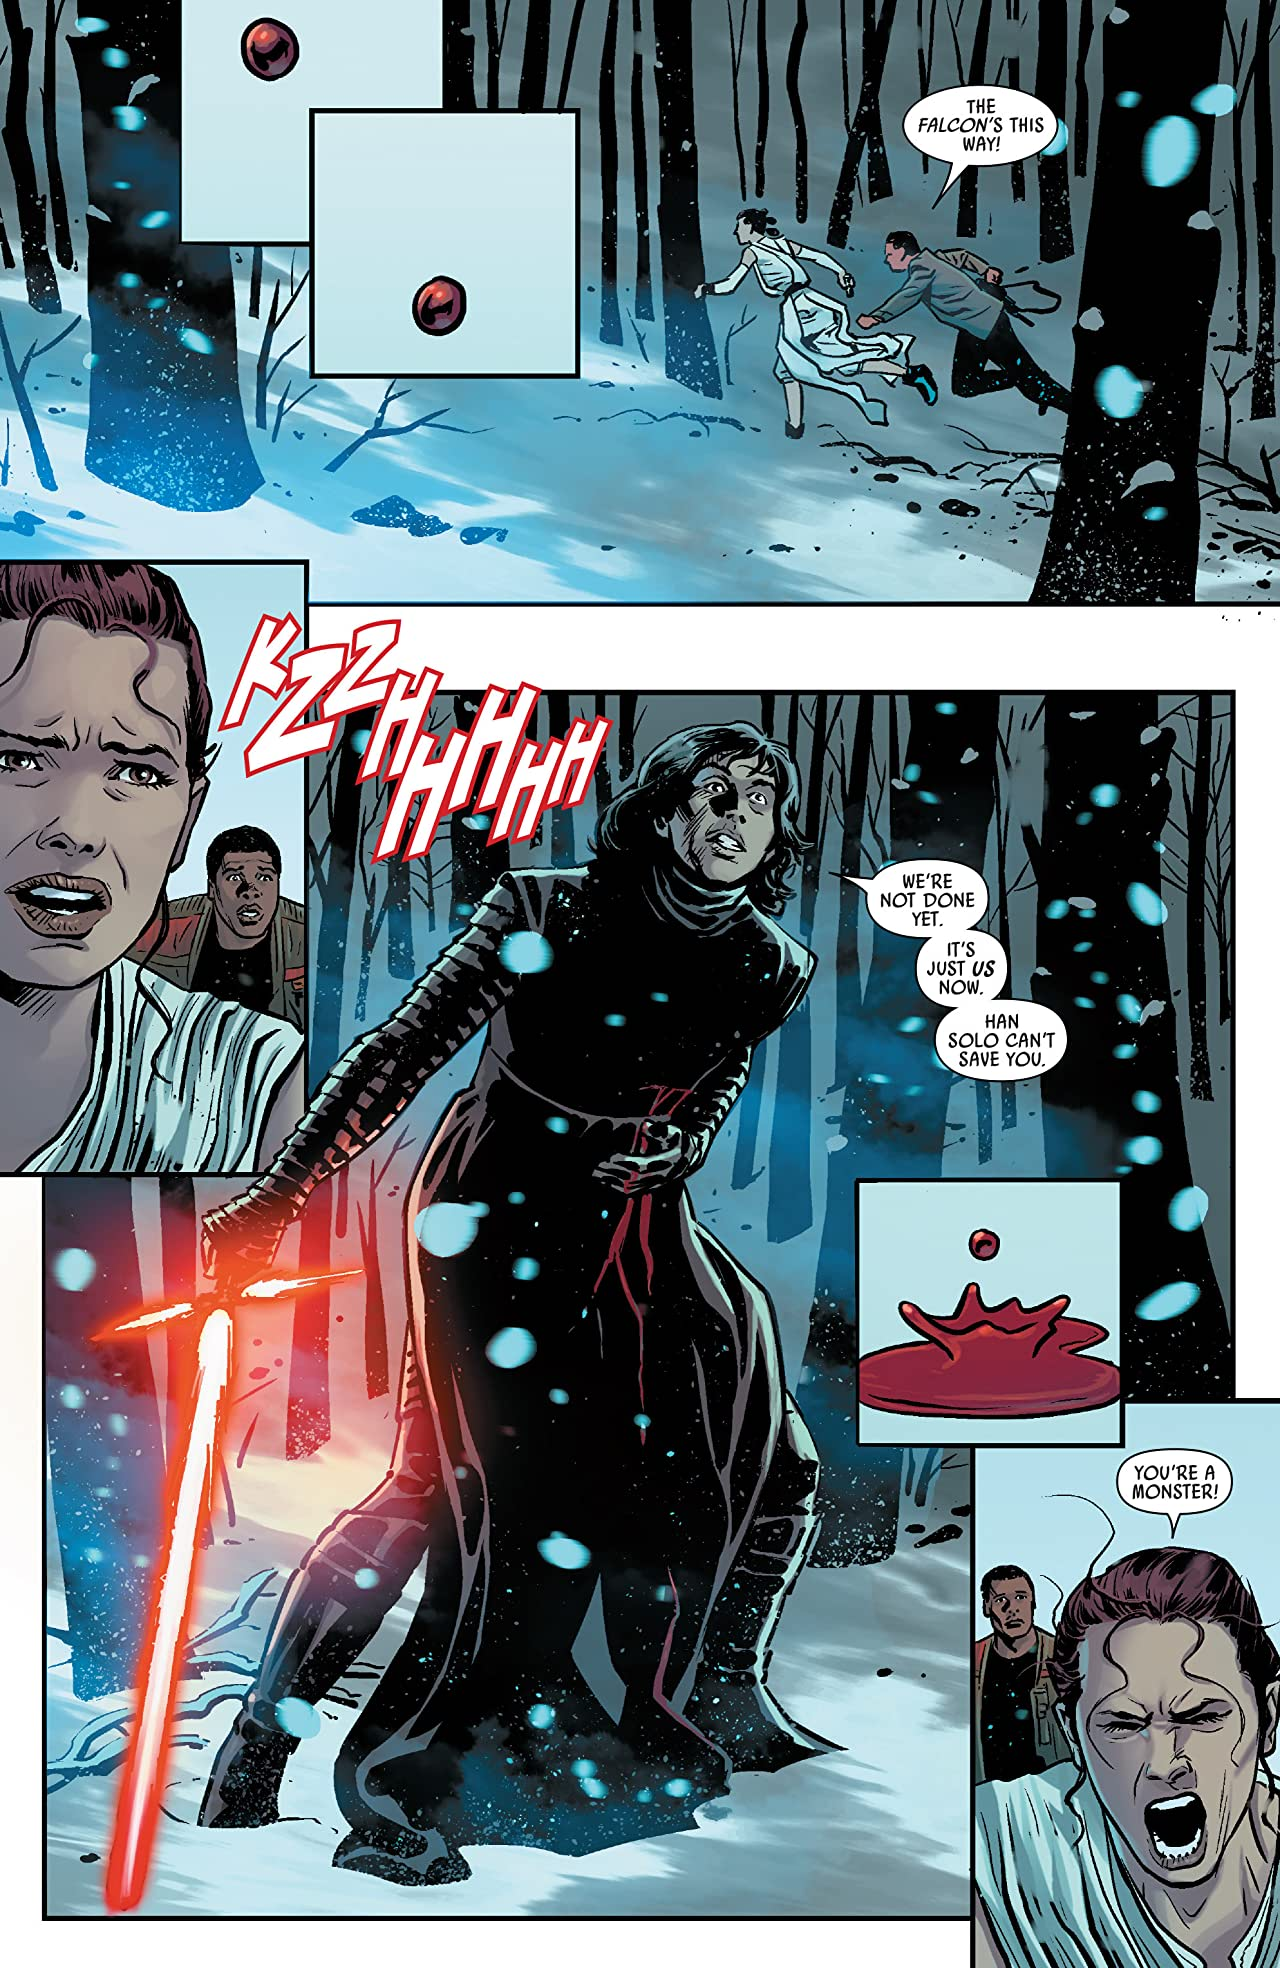 Star Wars: The Force Awakens Adaptation #6 (of 6)